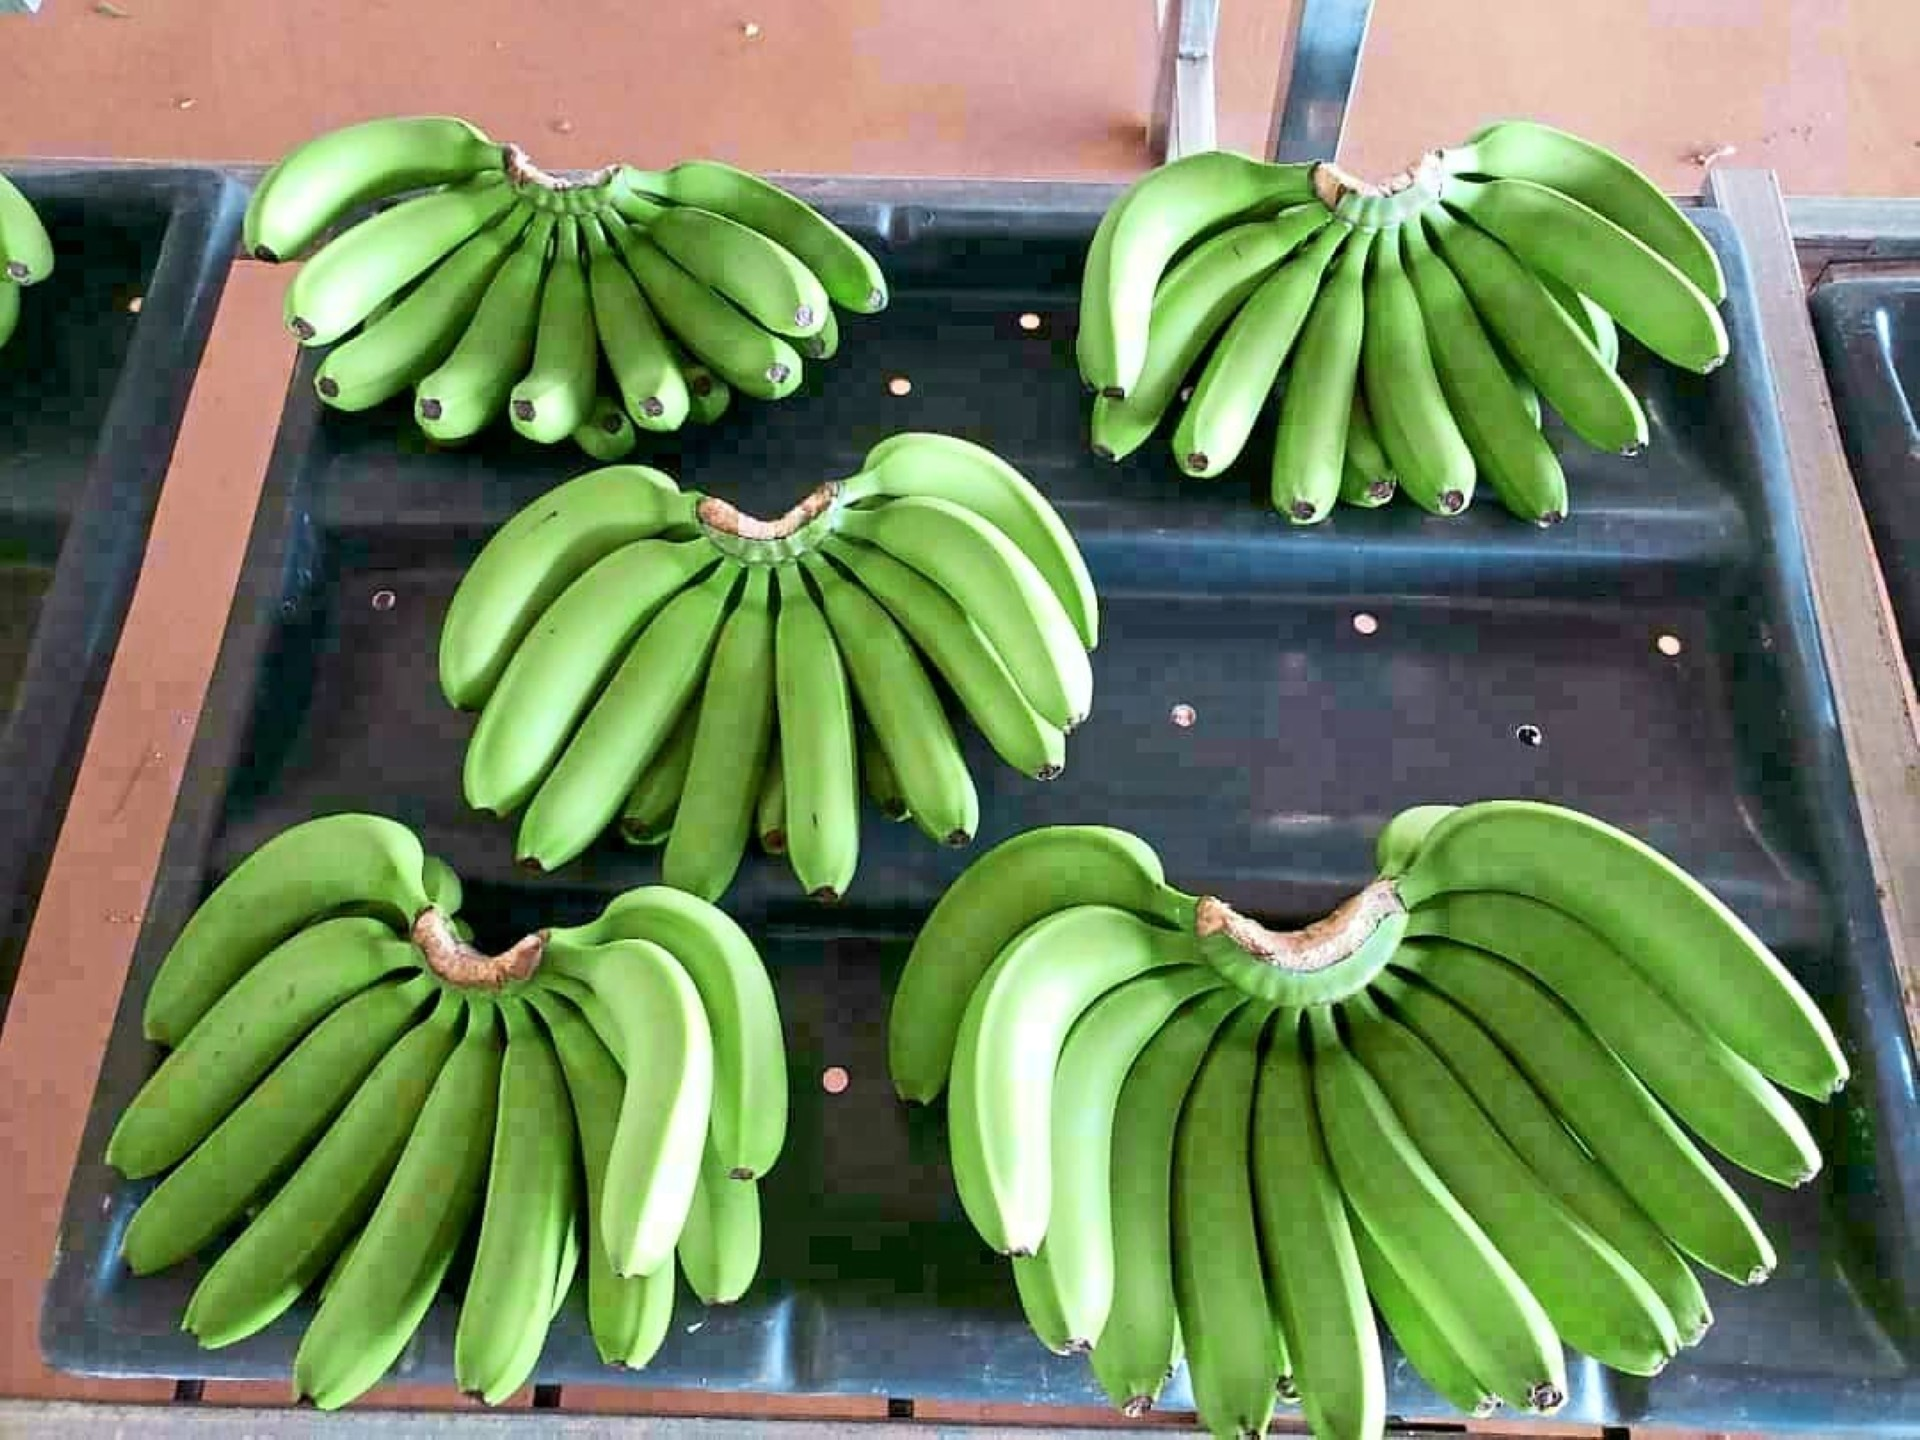 Top-quality fruit: Agrofresh exports Cavendish bananas under its Cavana brand.